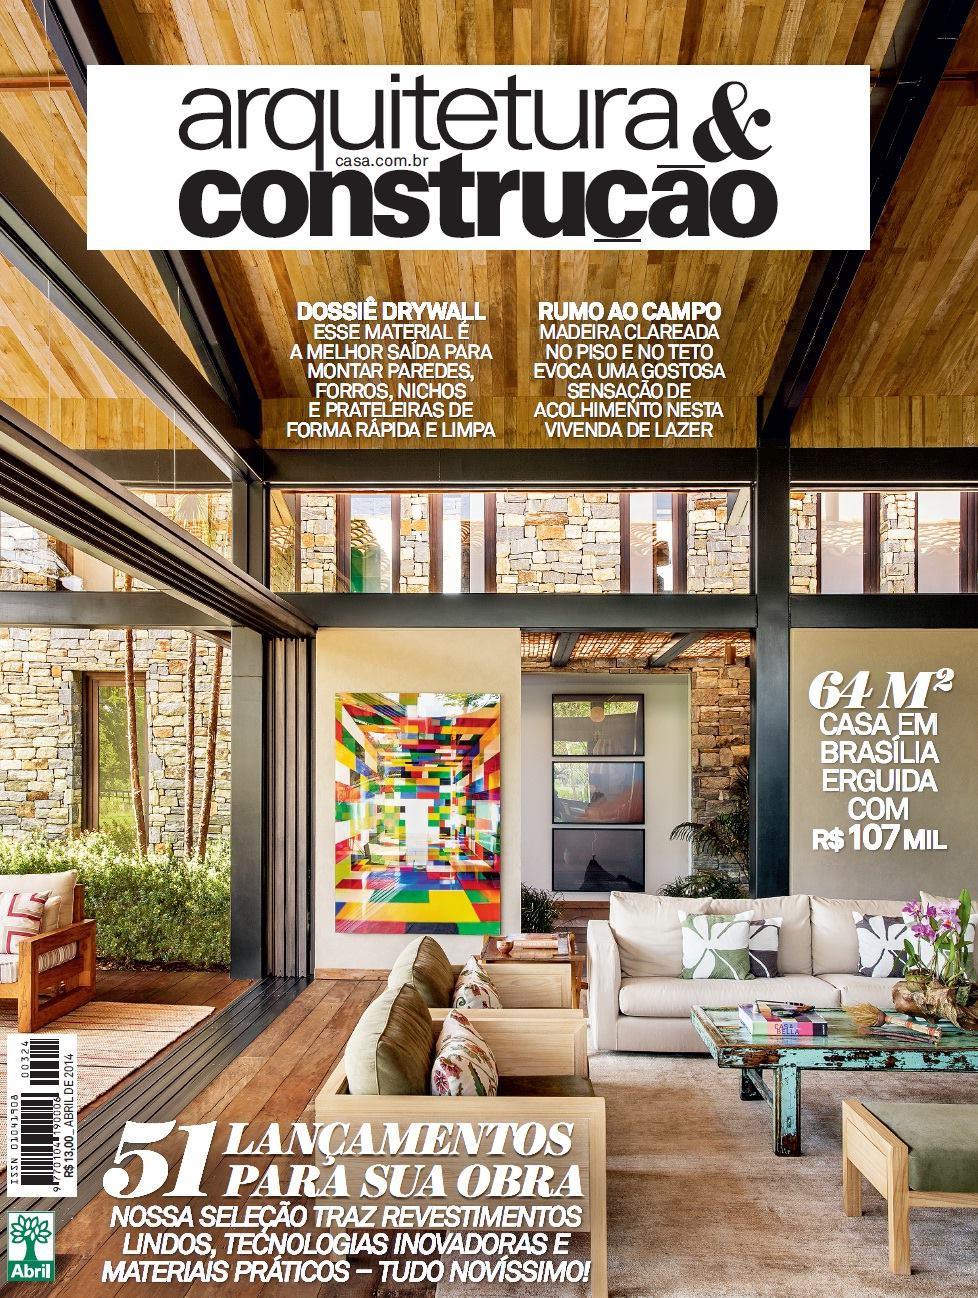 Box House by 1:1 arquitetura:design